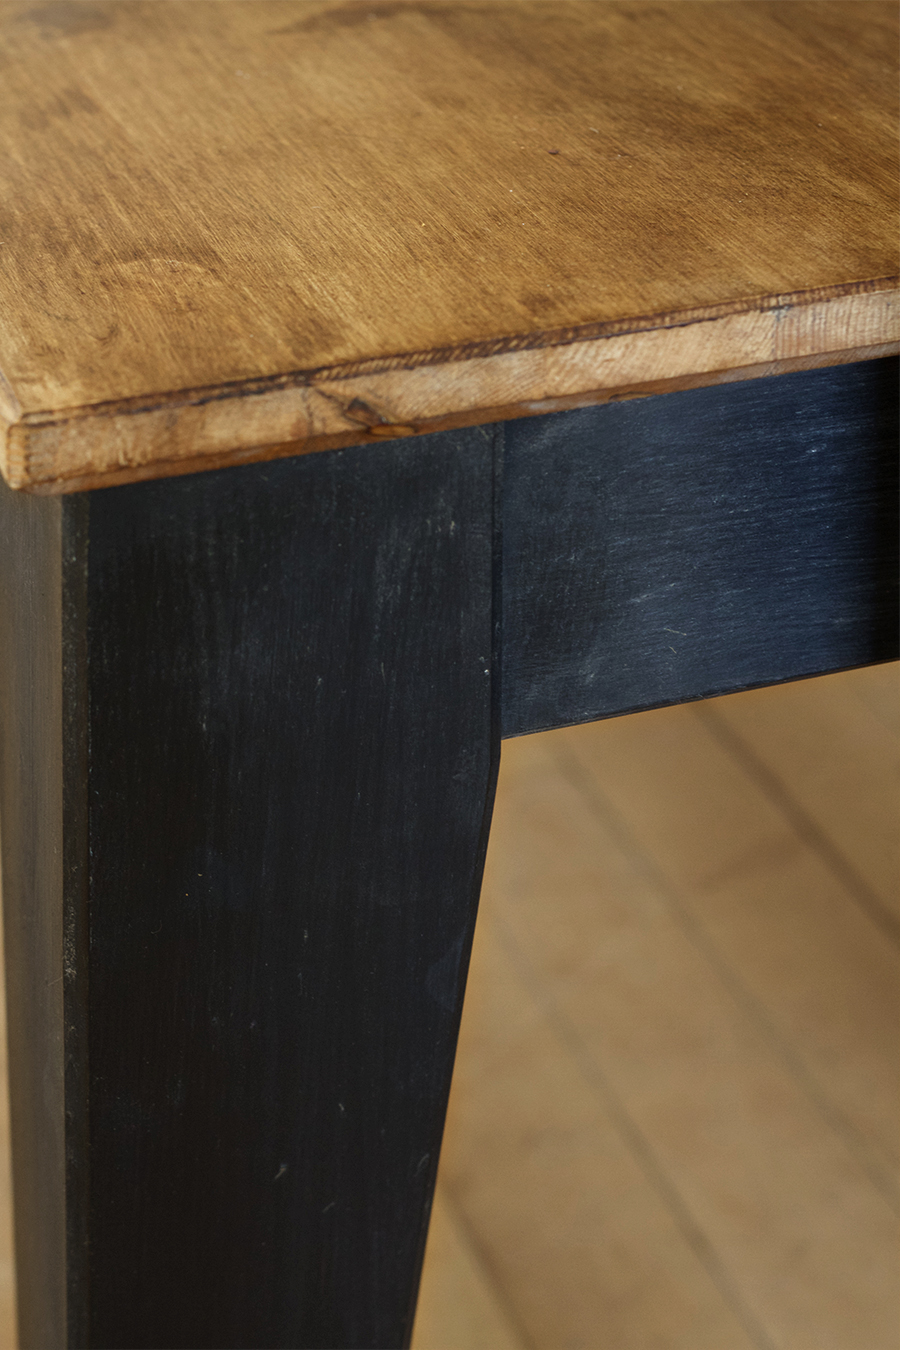 Table and Bench Facelift using Amy Howard at Home paints and waxes